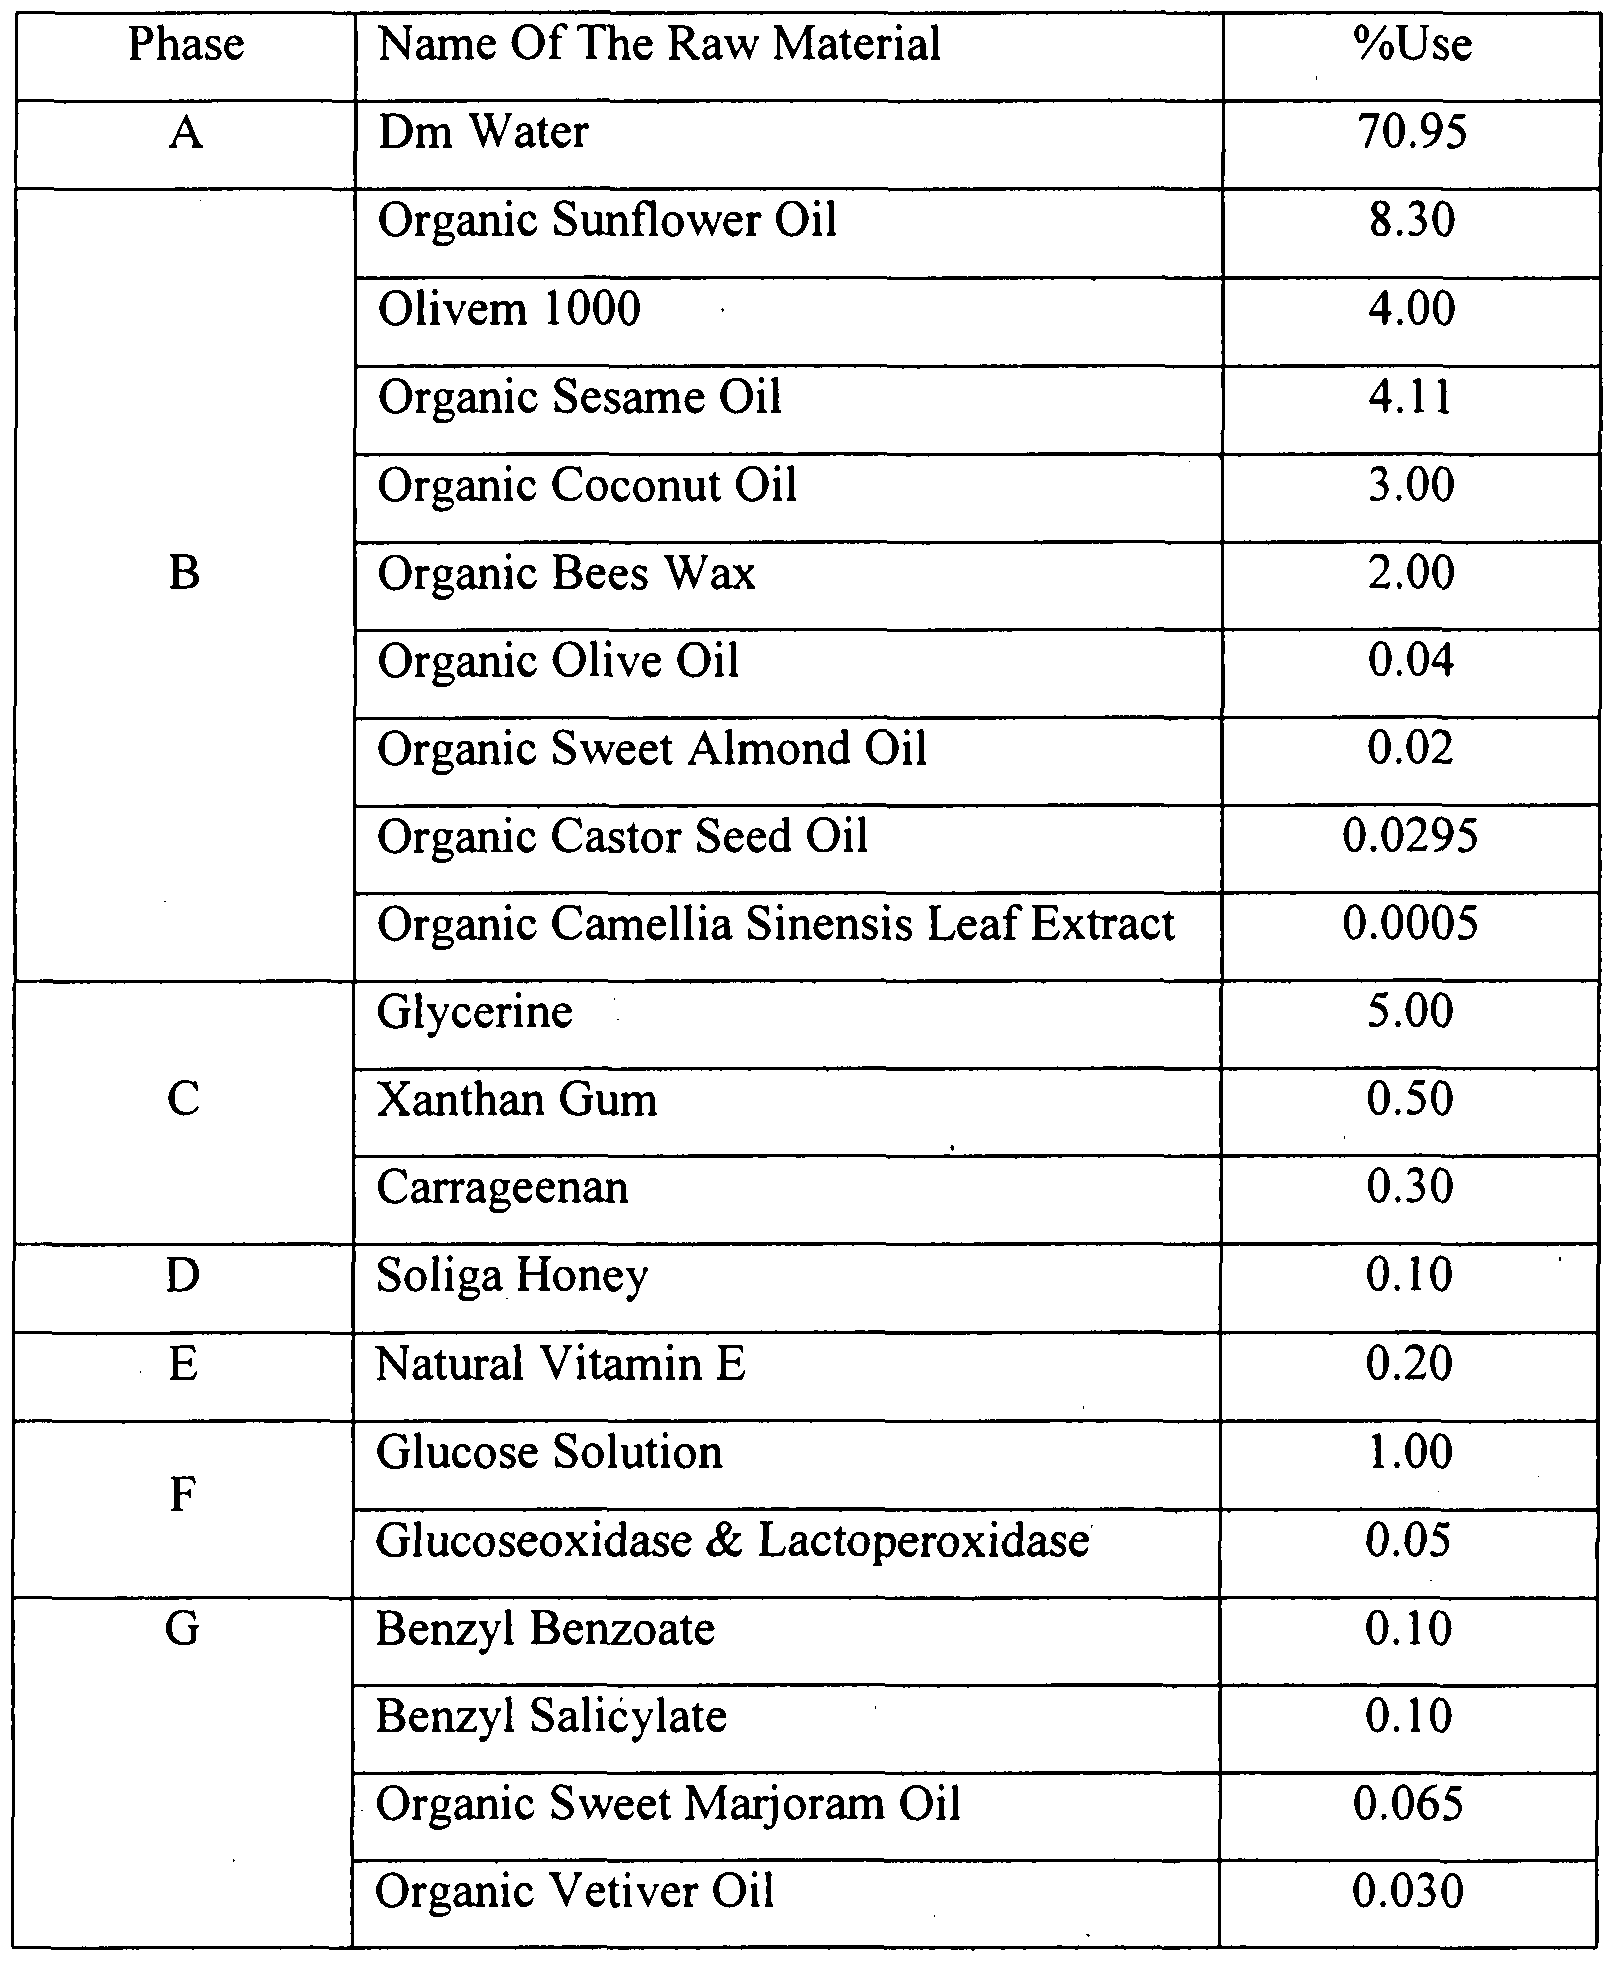 Wo2010086724a2 herbal cream and lotion compositions and methods figure imgf0000090001 nvjuhfo Images